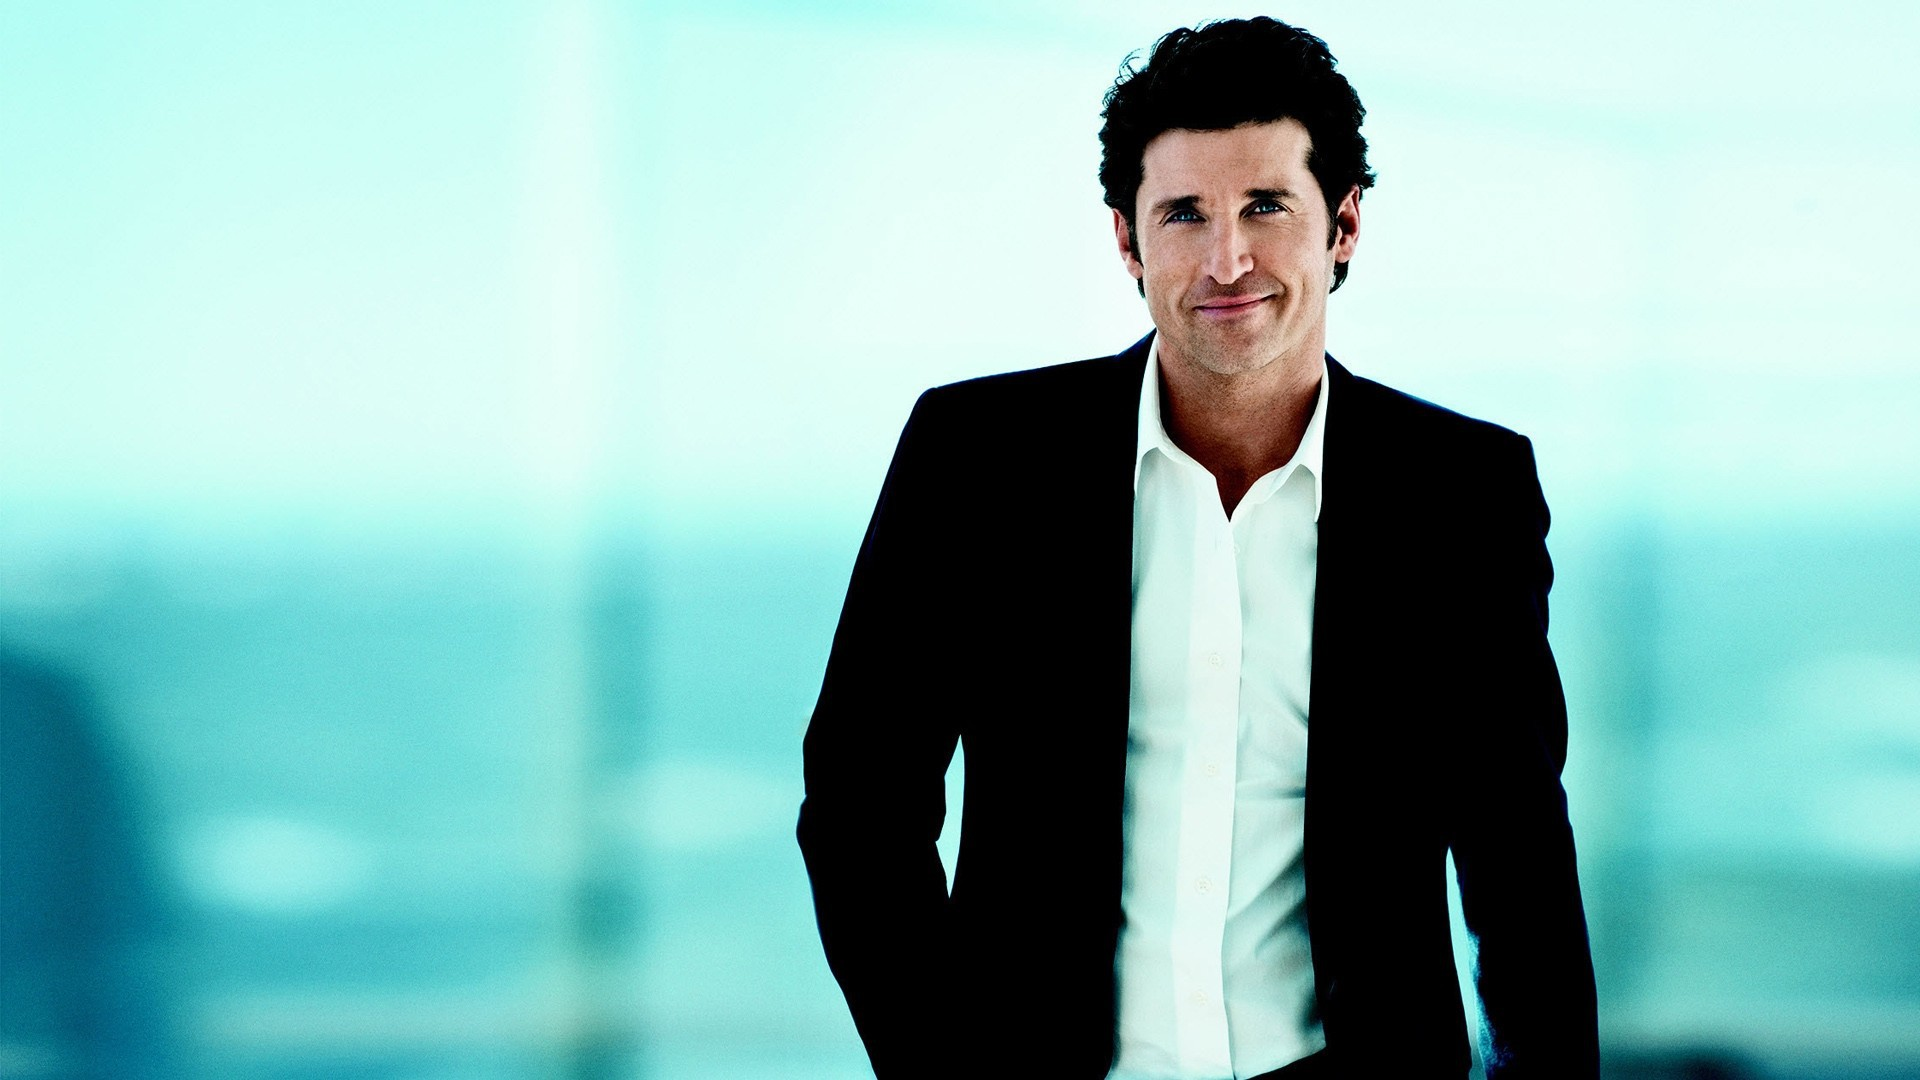 Patrick Dempsey Wallpapers Images Photos Pictures Backgrounds